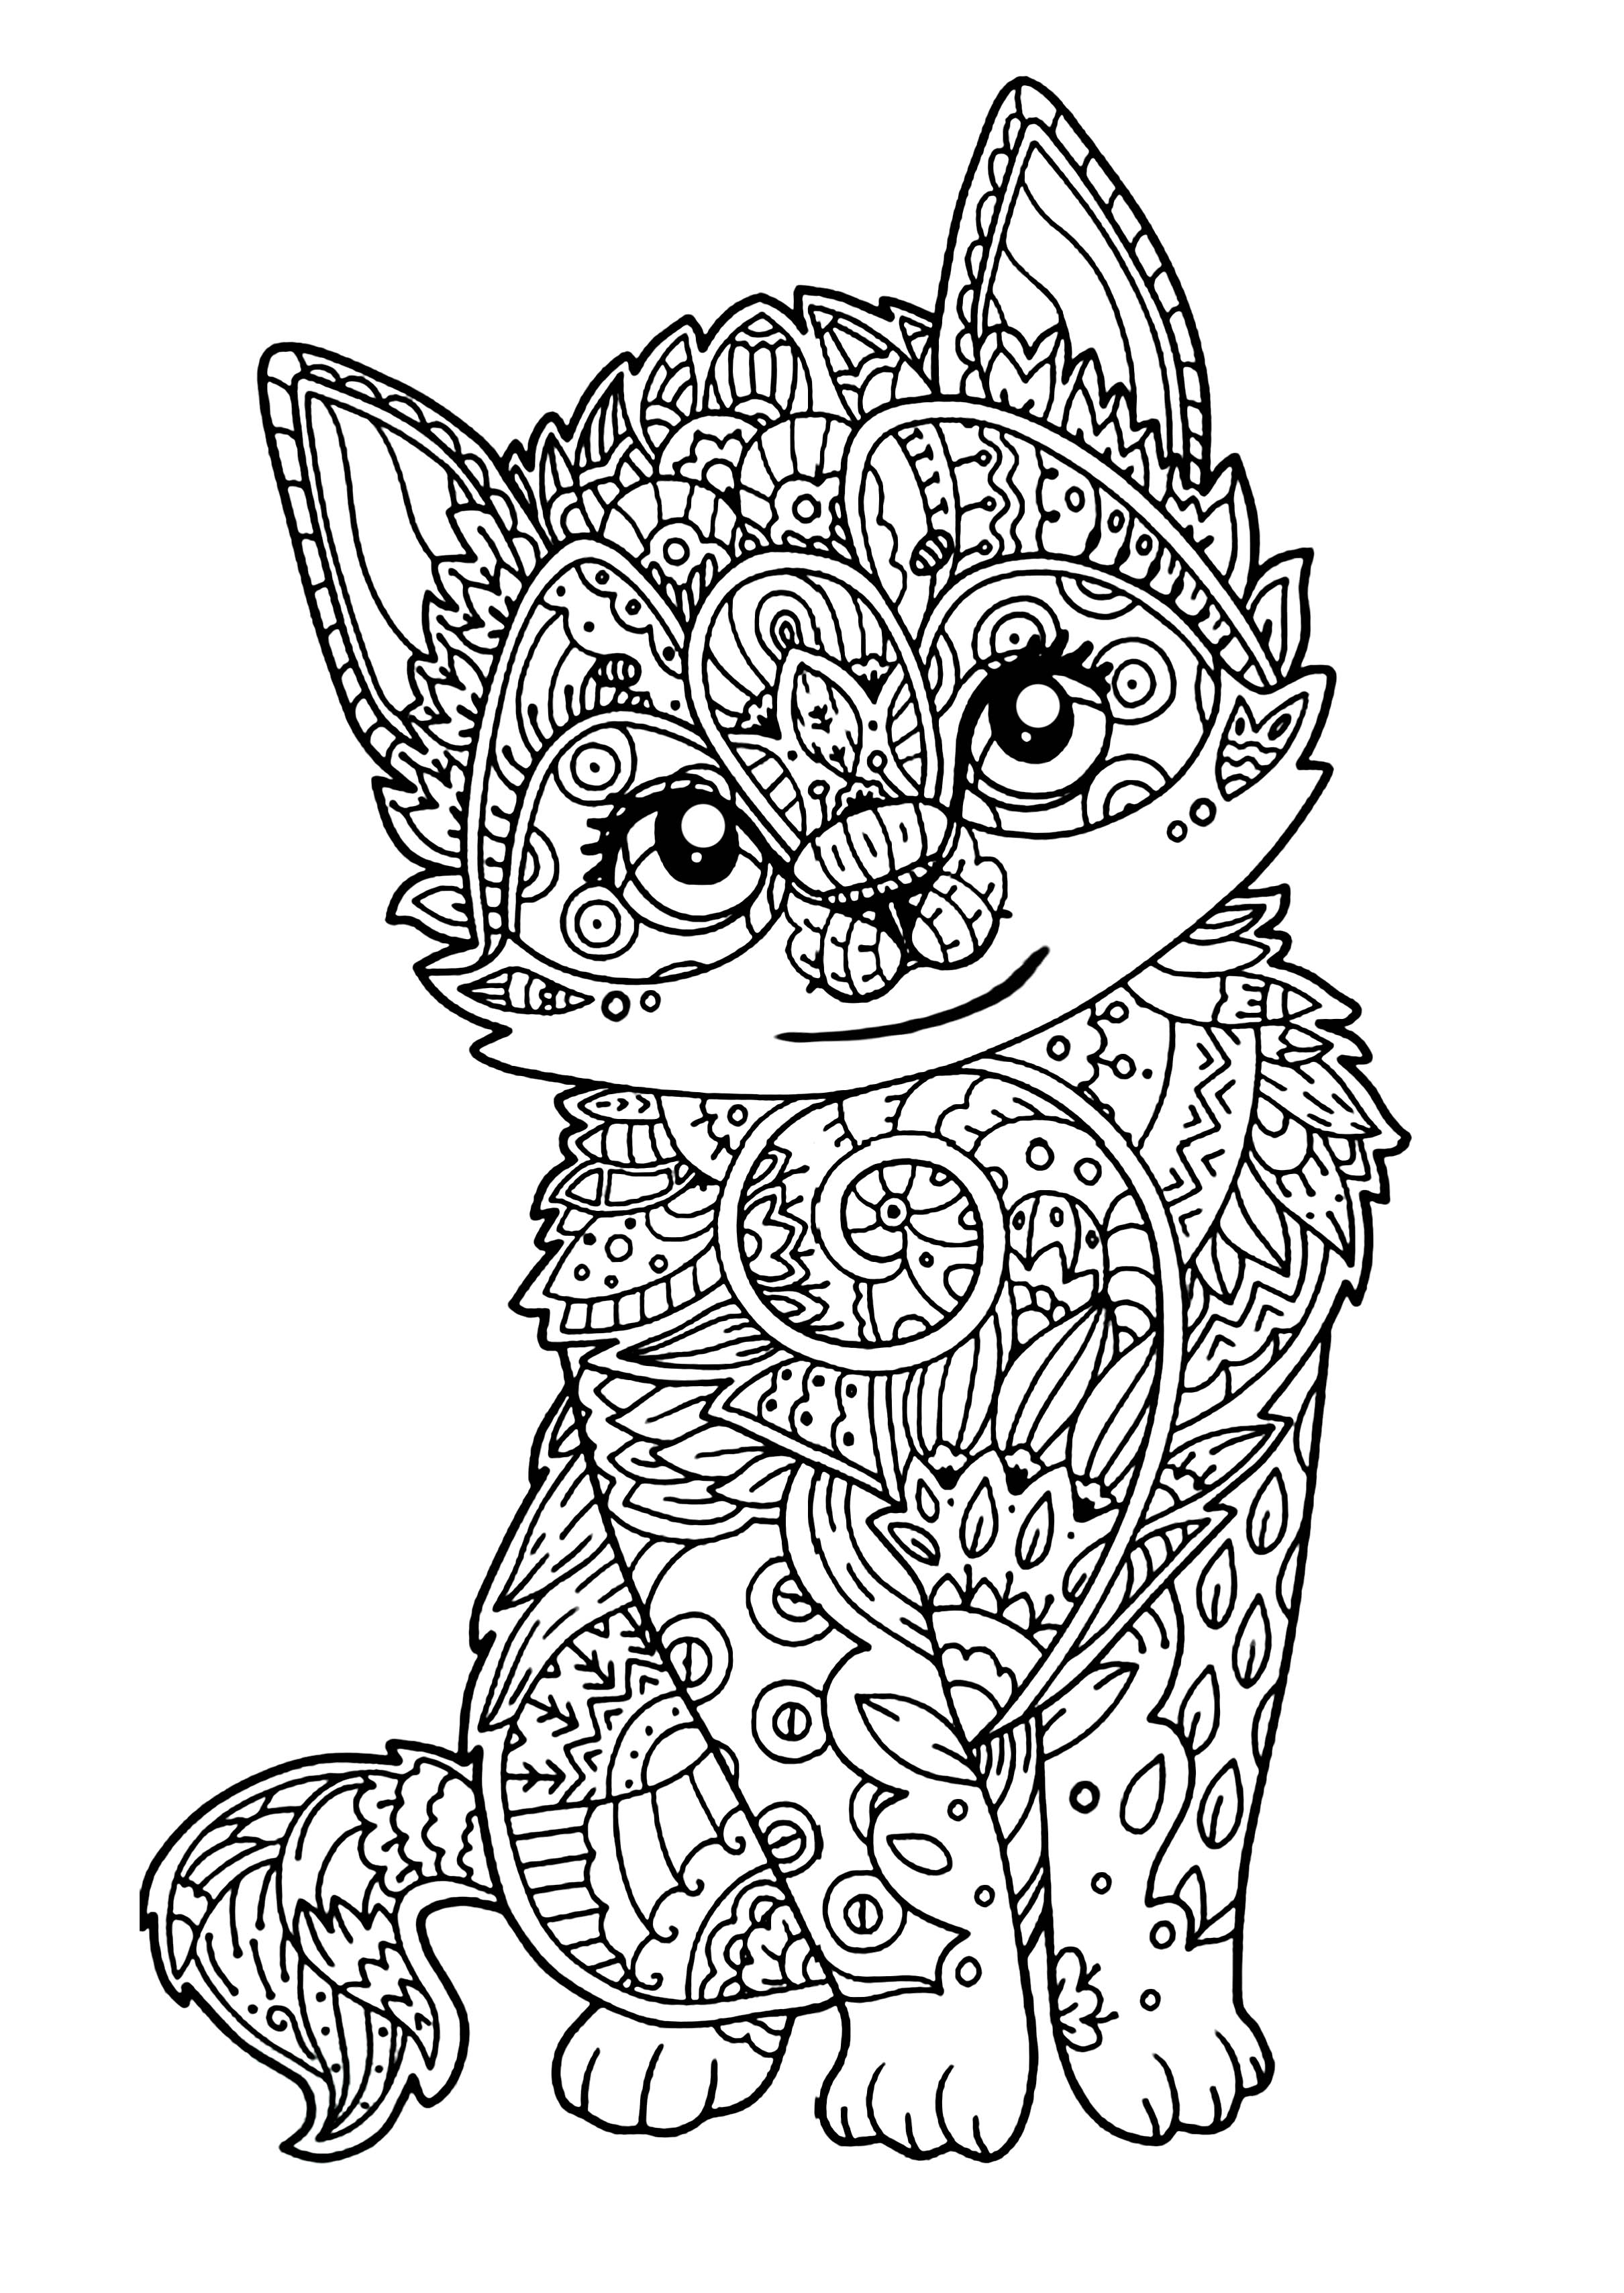 Mignon chaton chats coloriages difficiles pour adultes - Dessin a colorier un chat ...